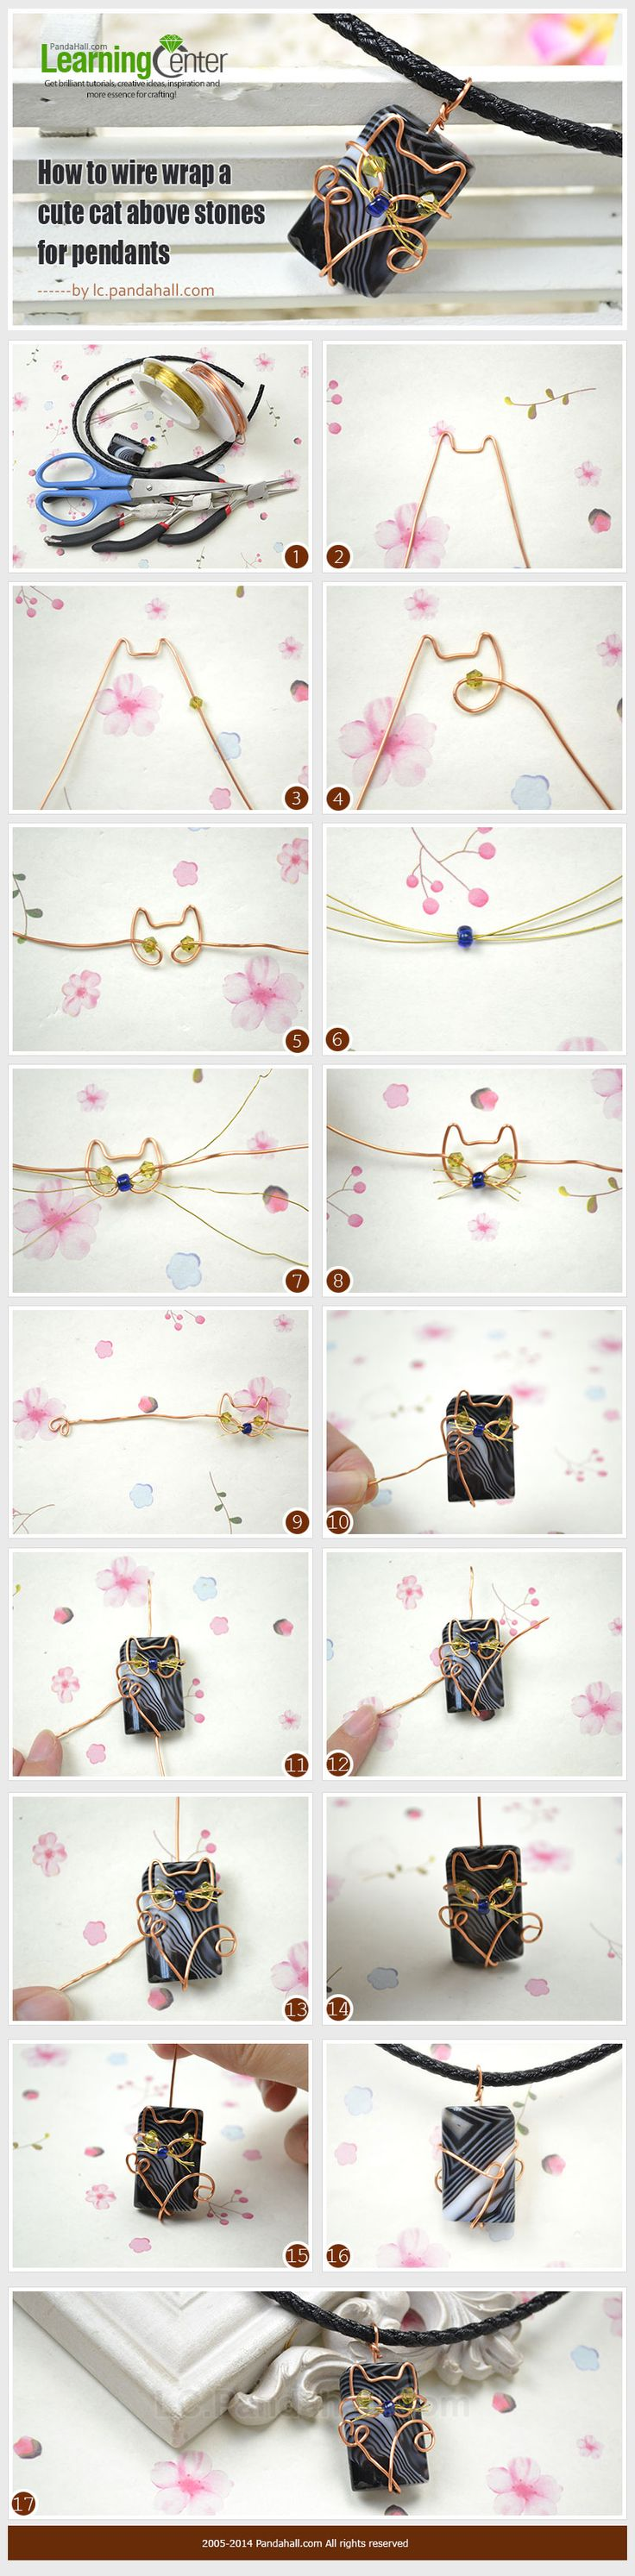 How to Wire Wrap a Cute Cat above Stones for Pendants